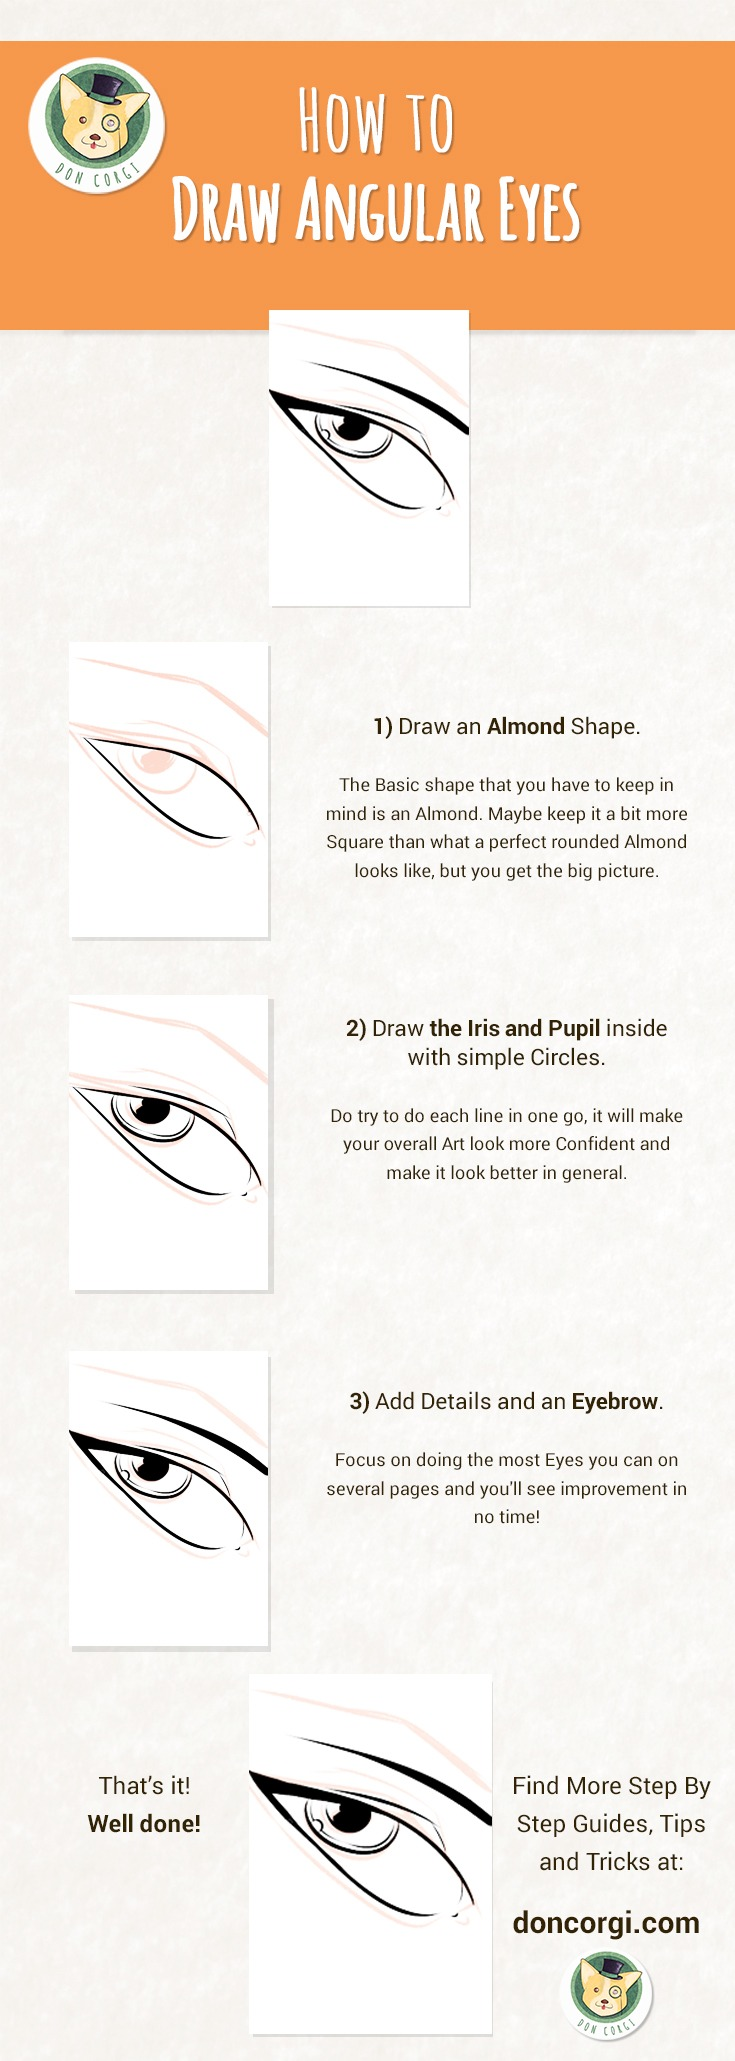 09 - How to Draw Eyes - Drawing Angular Eyes by Don Corgi